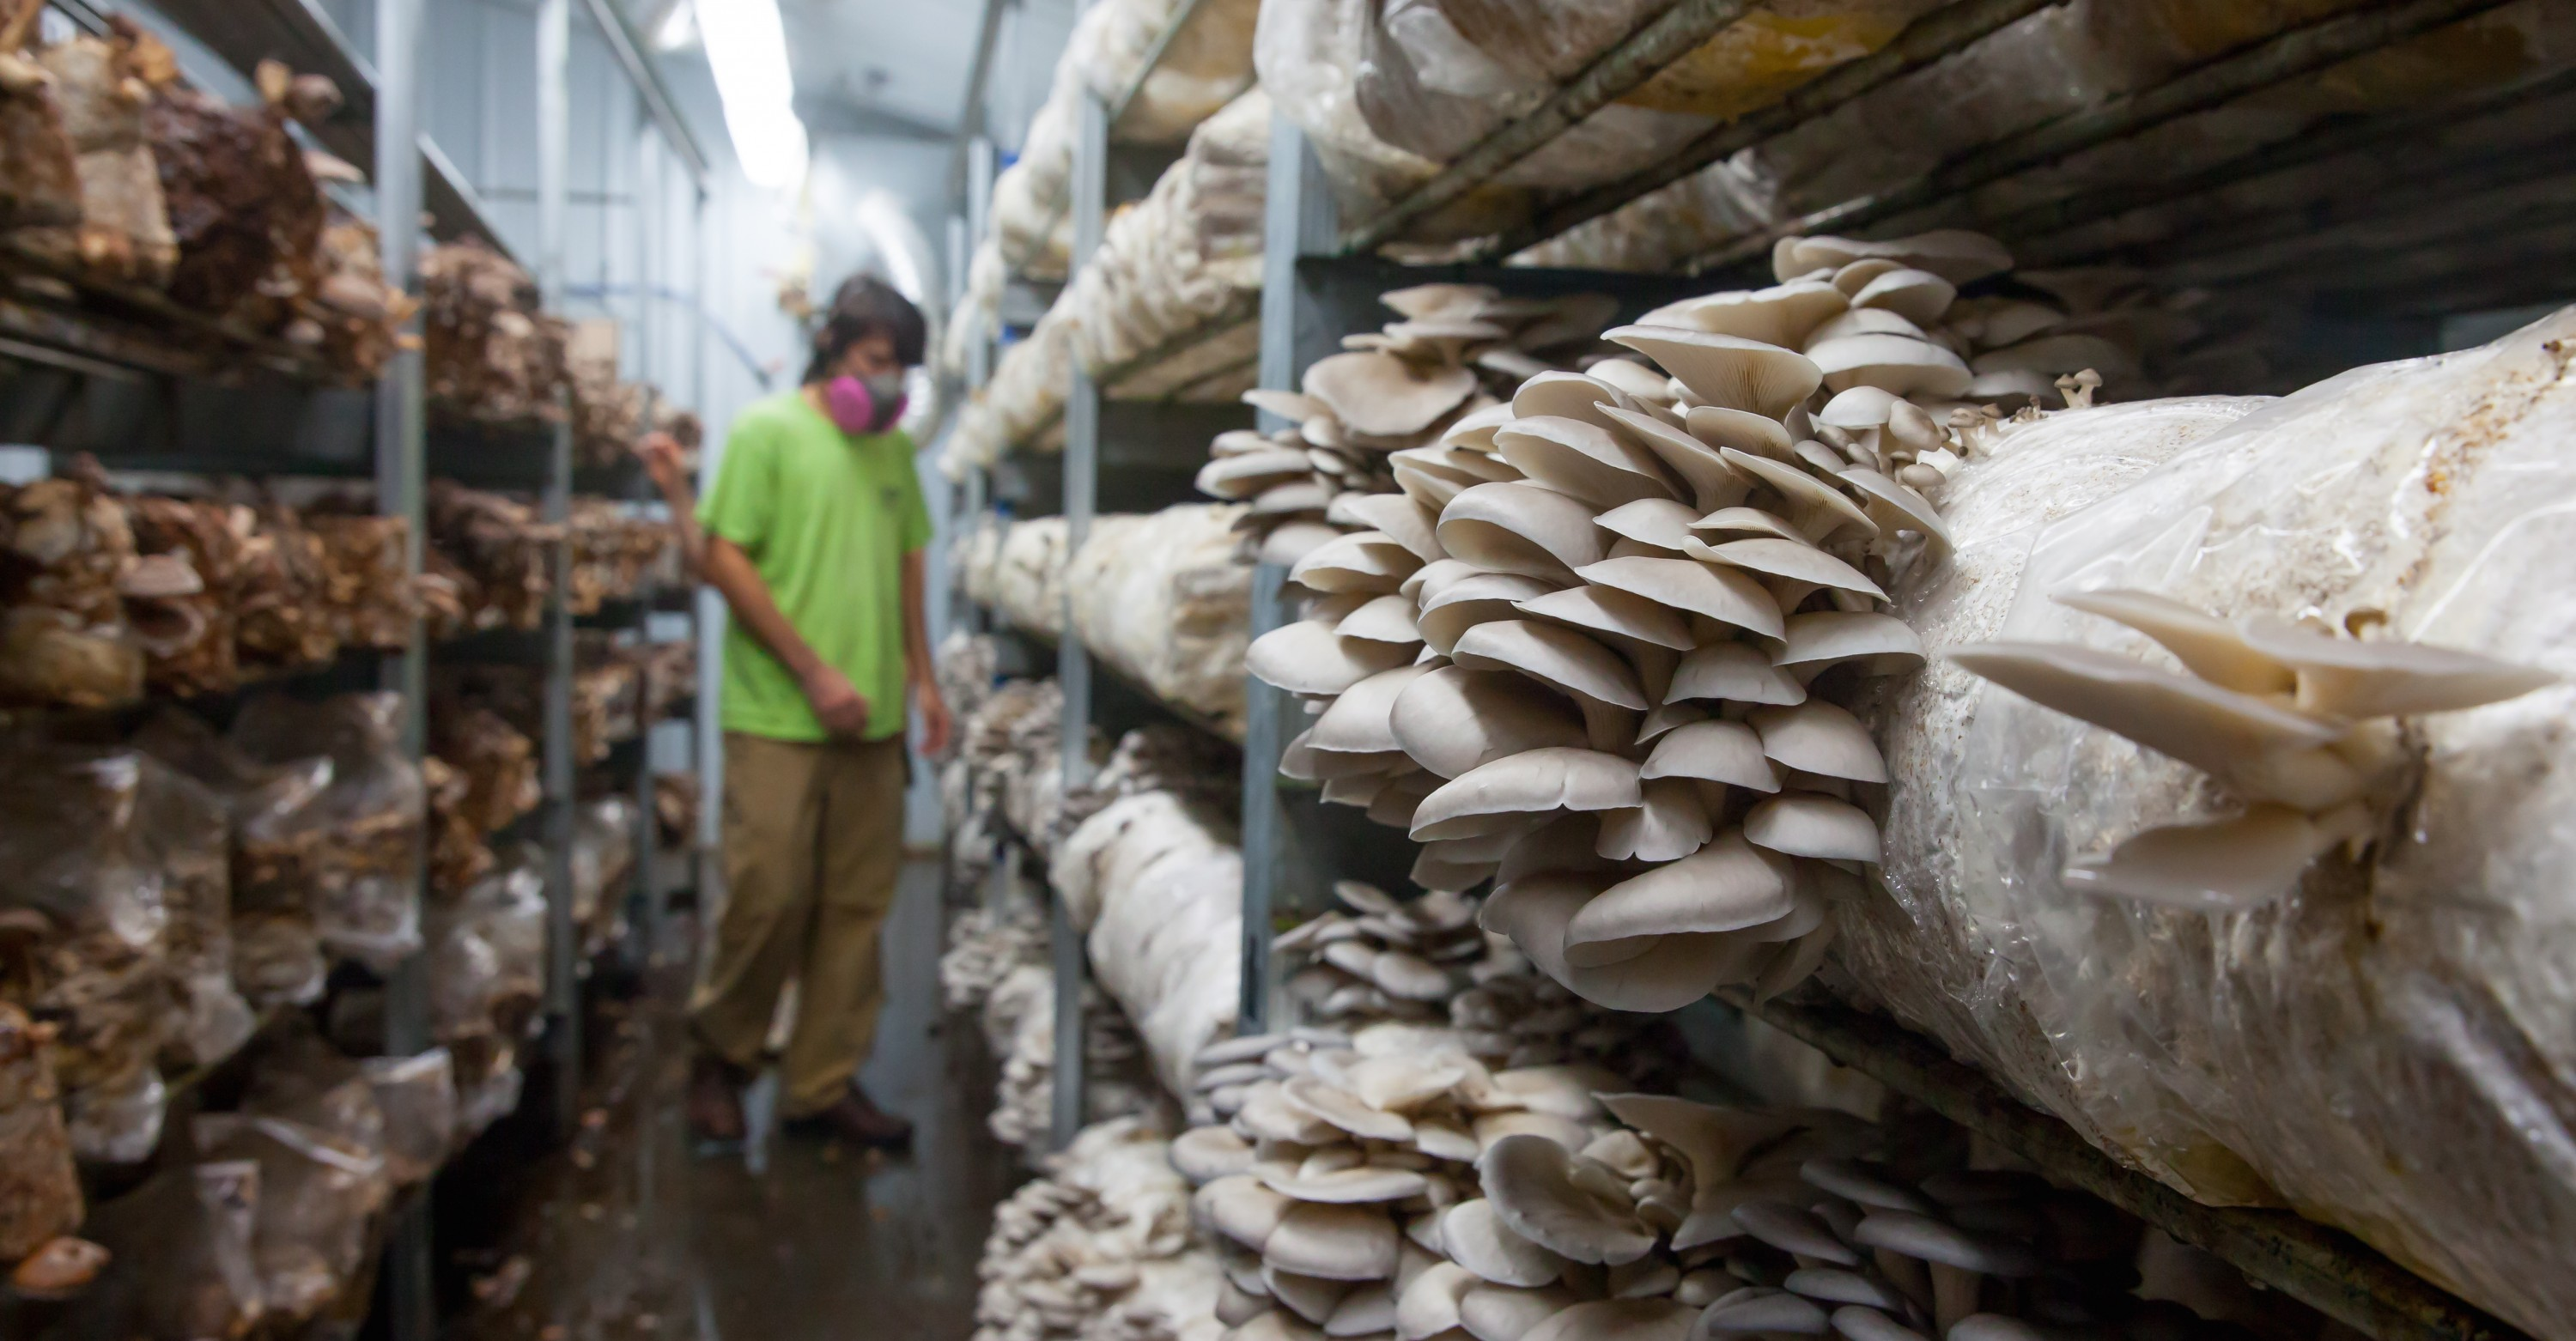 Drake Schutt checks the progress of oyster mushrooms growing in Fiery Fungi's barn.